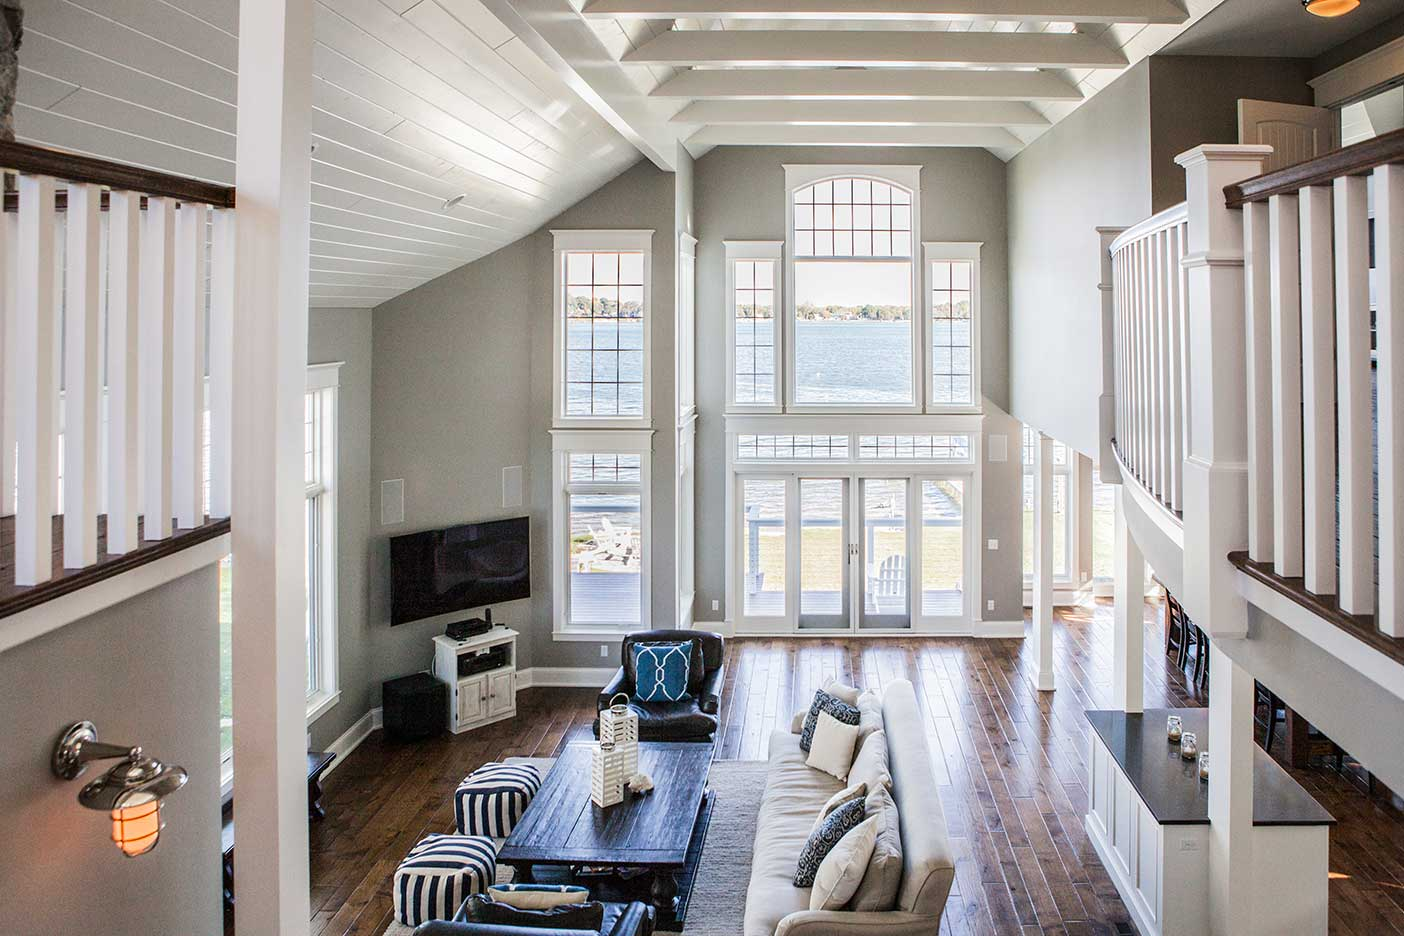 Living room view with furniture and large windows that show lake